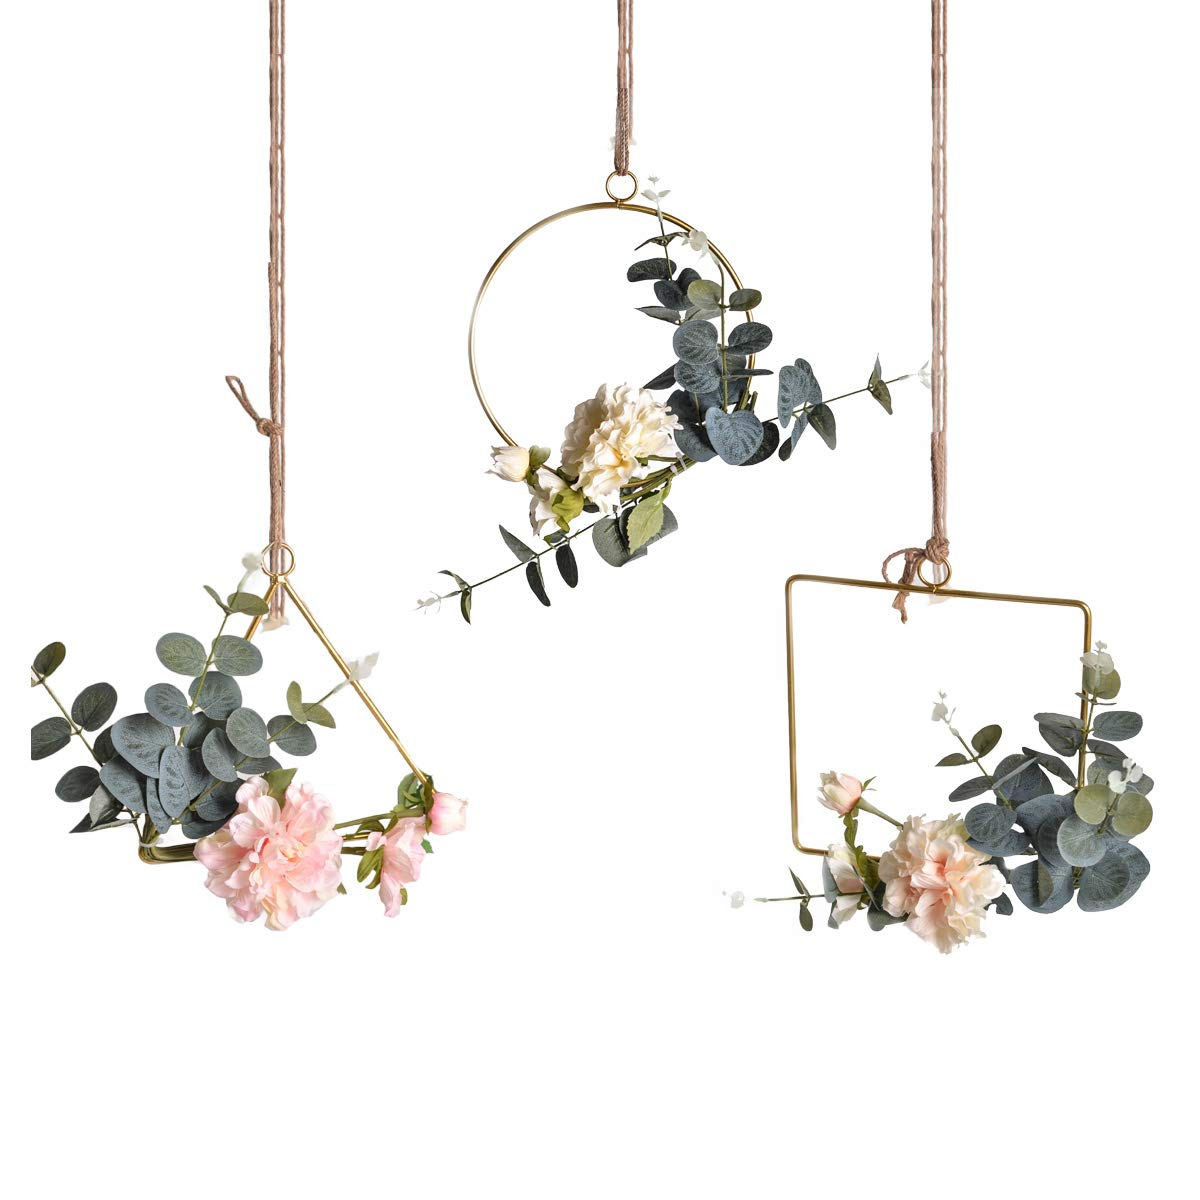 Pauwer Floral Hoop Wreath Set of 3 Artificial Peony Flower and Eucalyptus Vine Wreath for Wedding Party Backdrop Decor by Pauwer